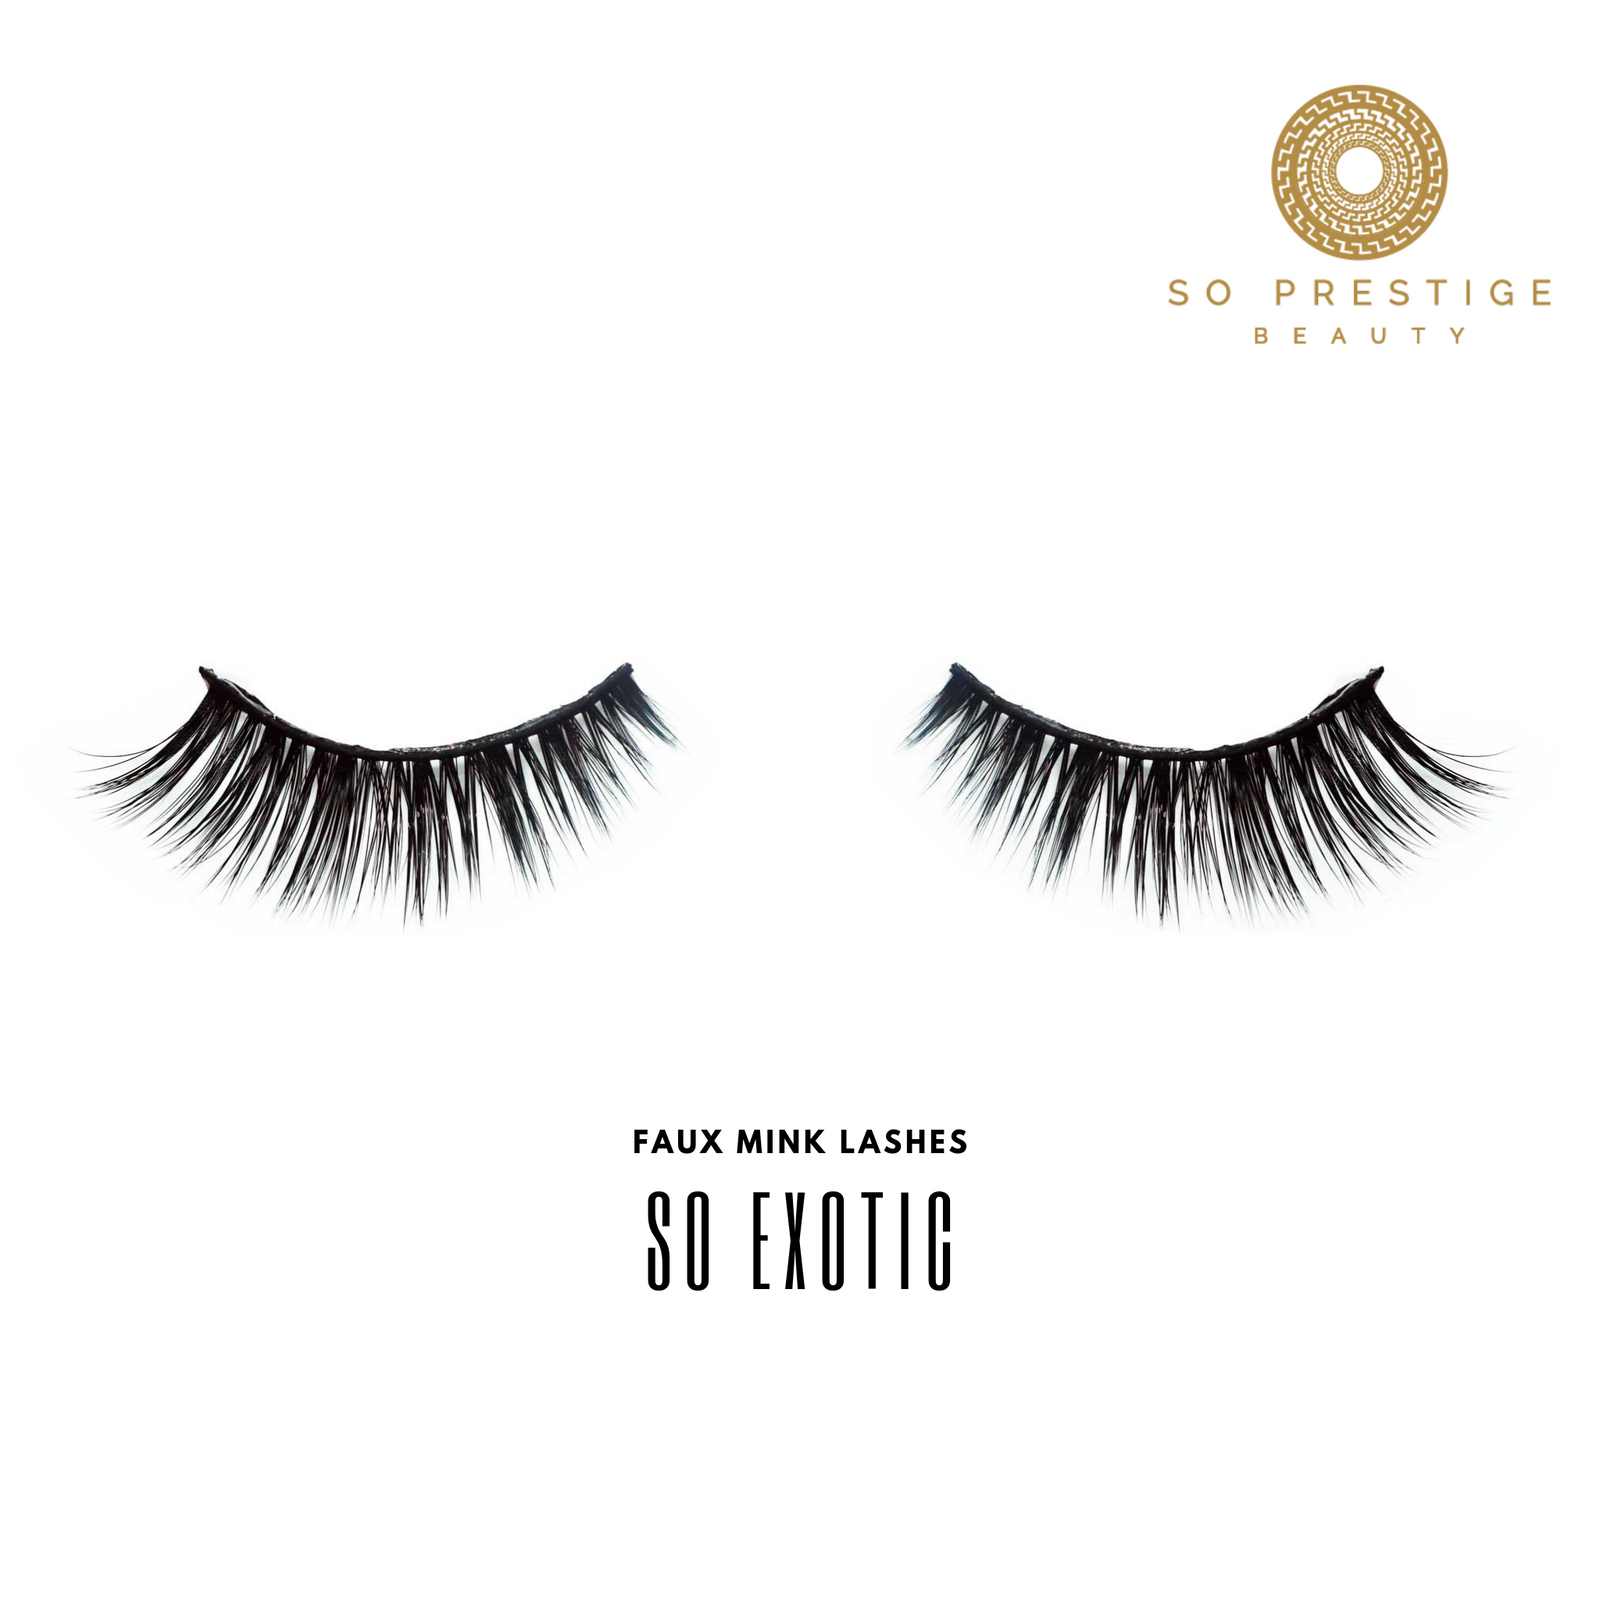 3D Faux Mink Eyelashes in the Style ' So Exotic' by So Prestige Beauty